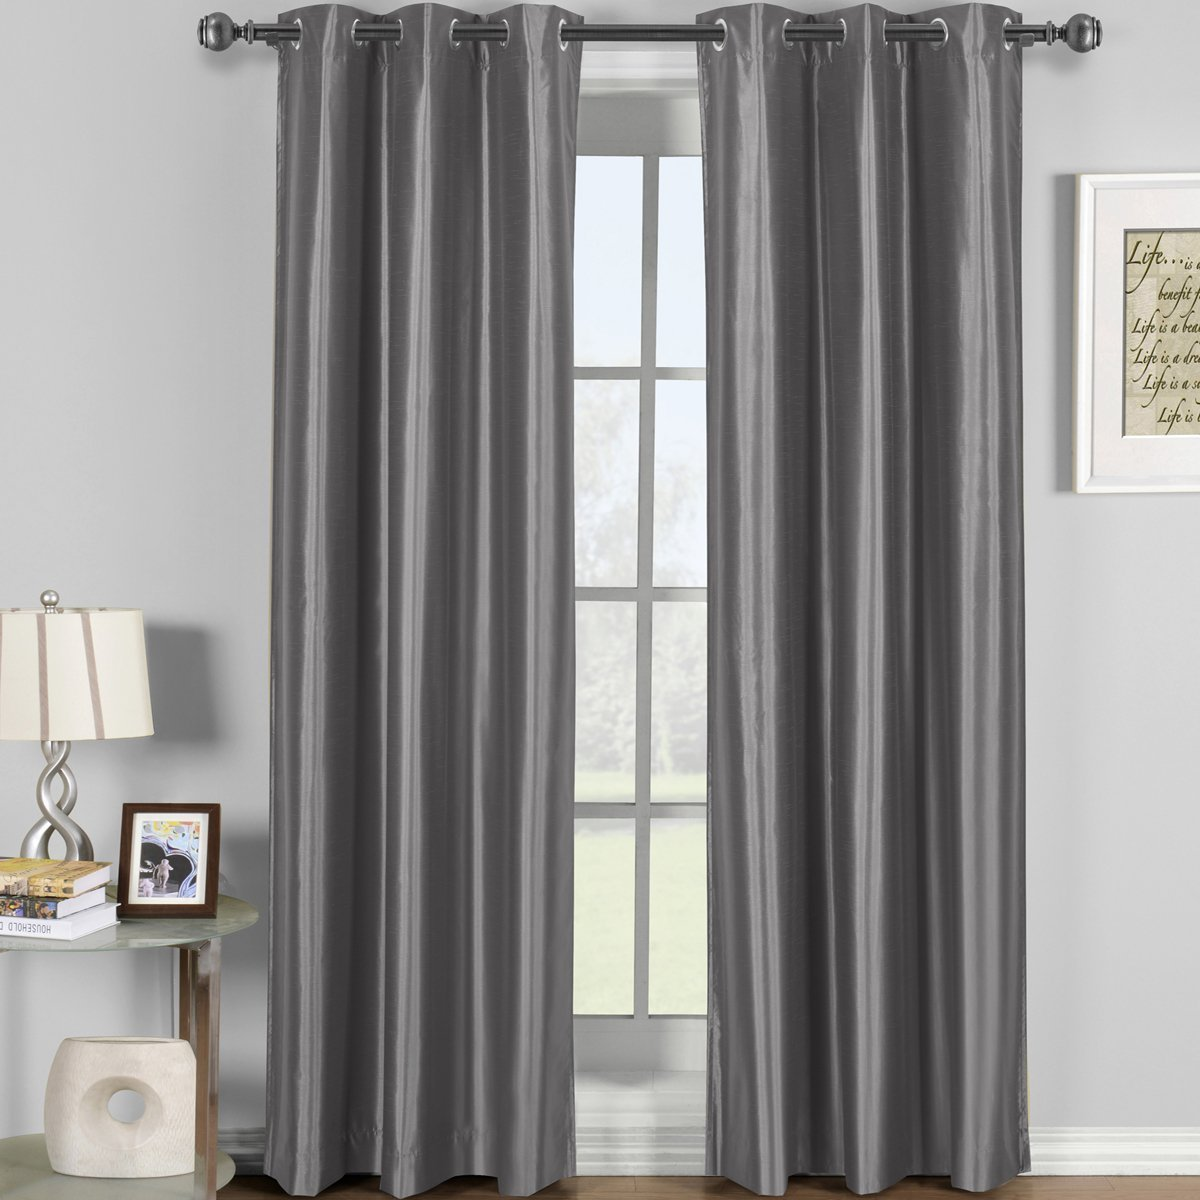 Soho Gray Grommet Blackout Window Curtain Drape, Solid Pattern, 42x84 inches, by Royal Hotel